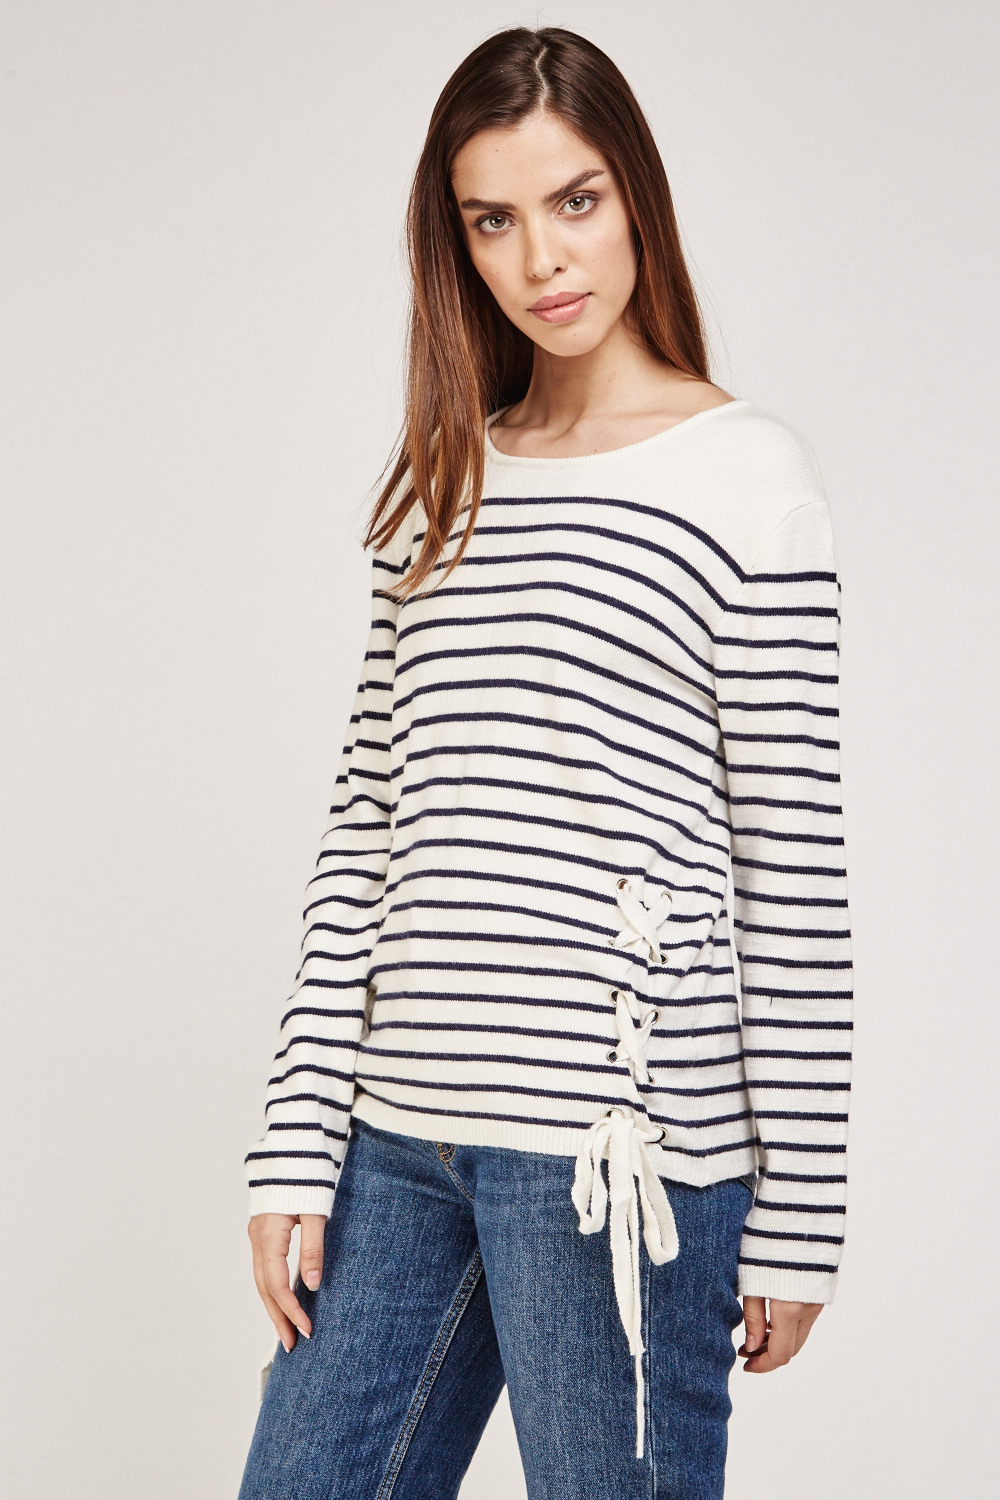 b81812607d Lace Up Front Side Striped Knit Jumper - Cream Navy - Just £5